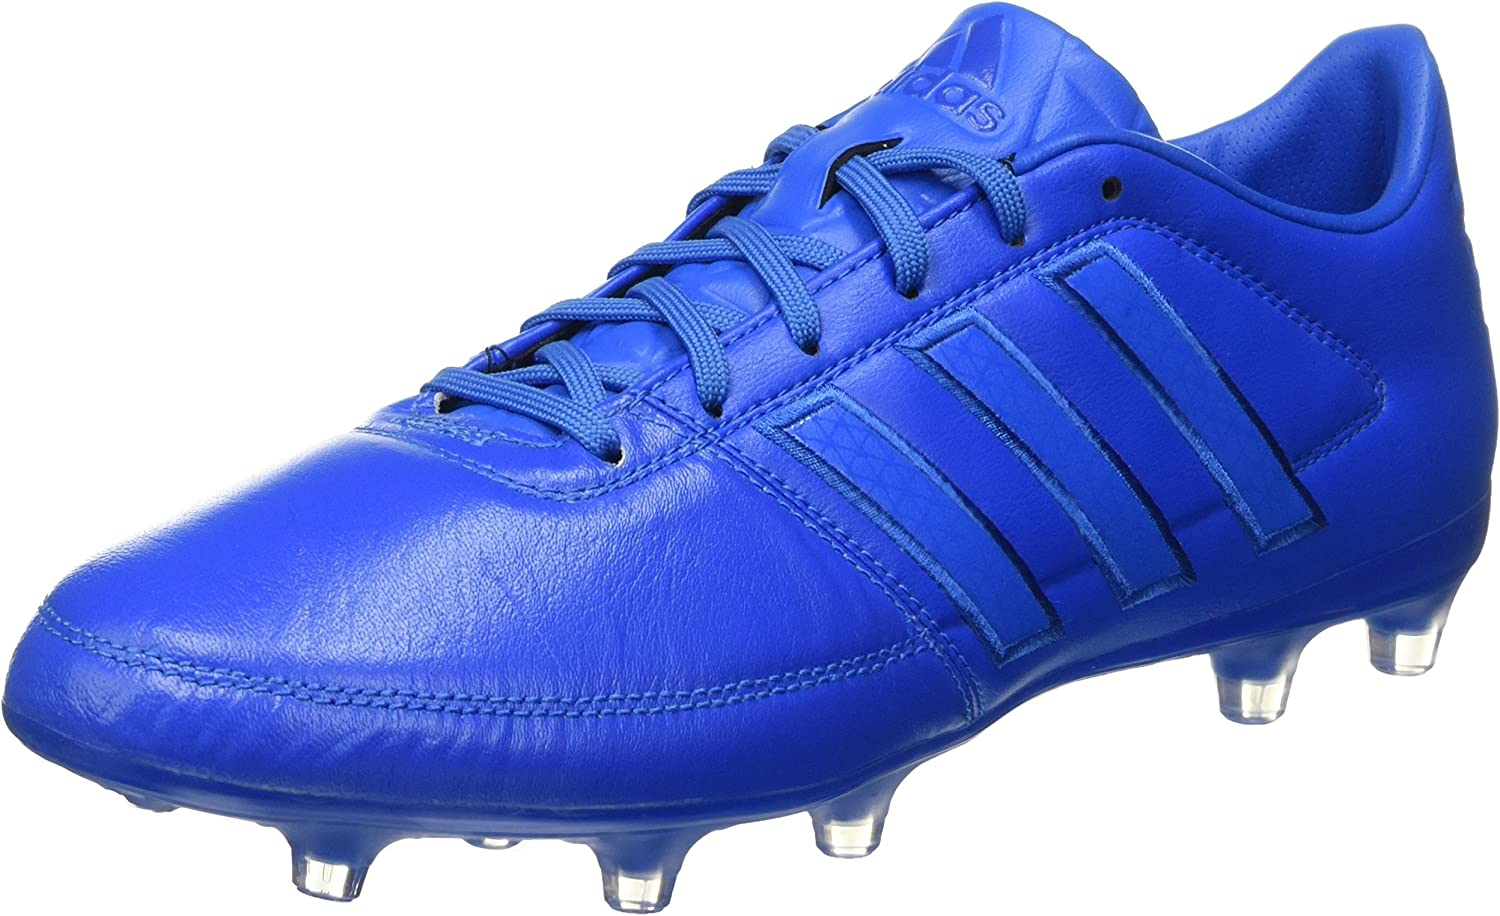 Adidas Men's Glgold 16.1 Fg Football Boots